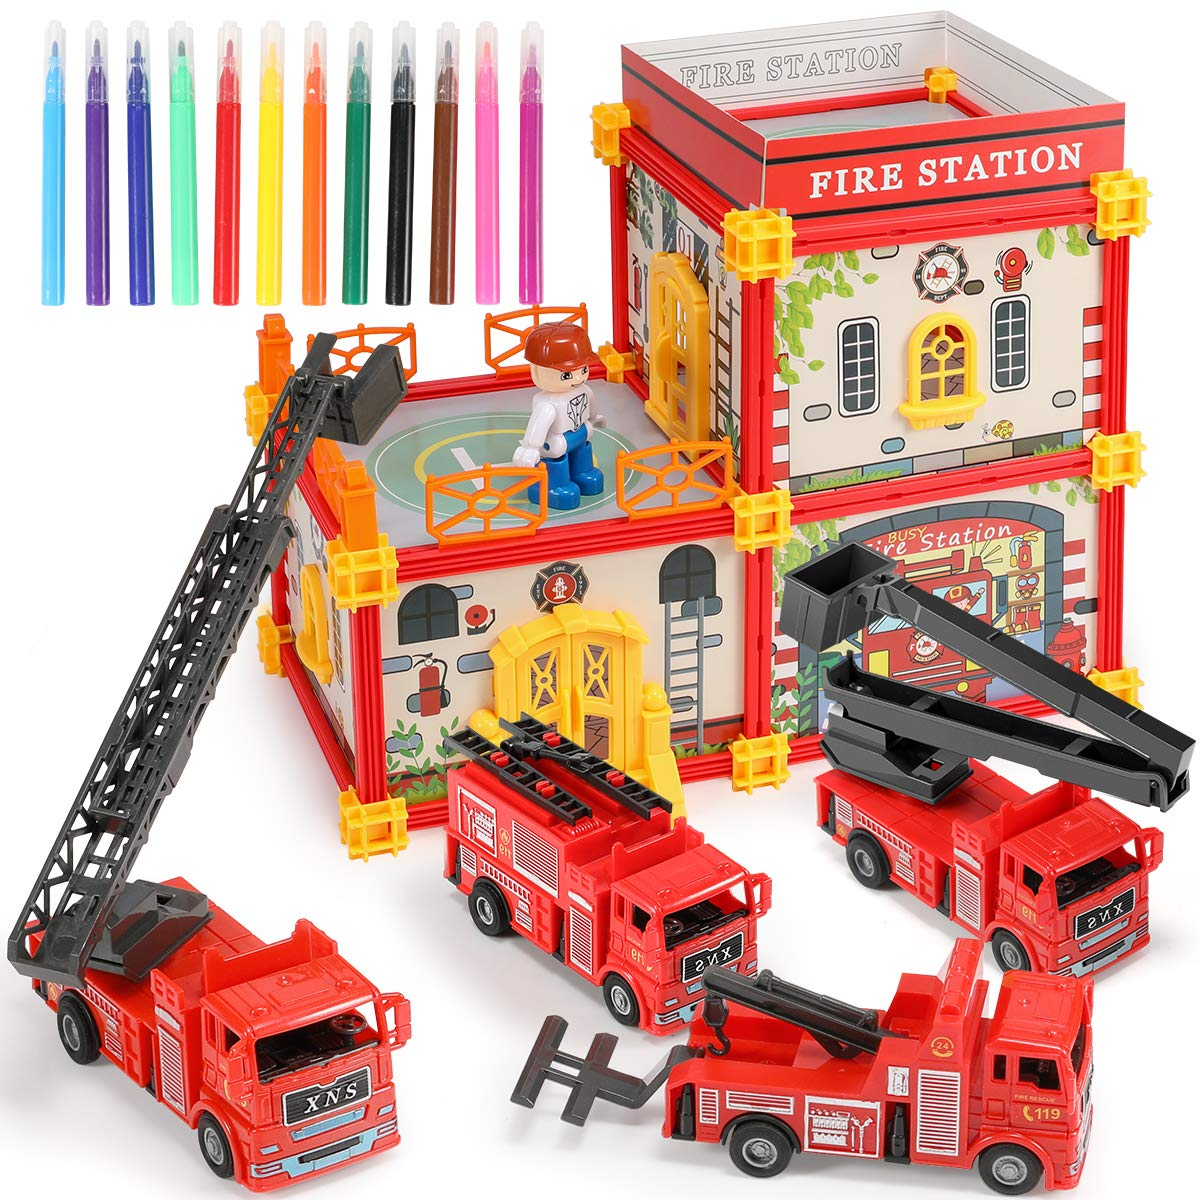 Geyiie Fire Truck Vehicle Car Toy Set Play Vehicles in Carrier for Over 3 Years Old Boys